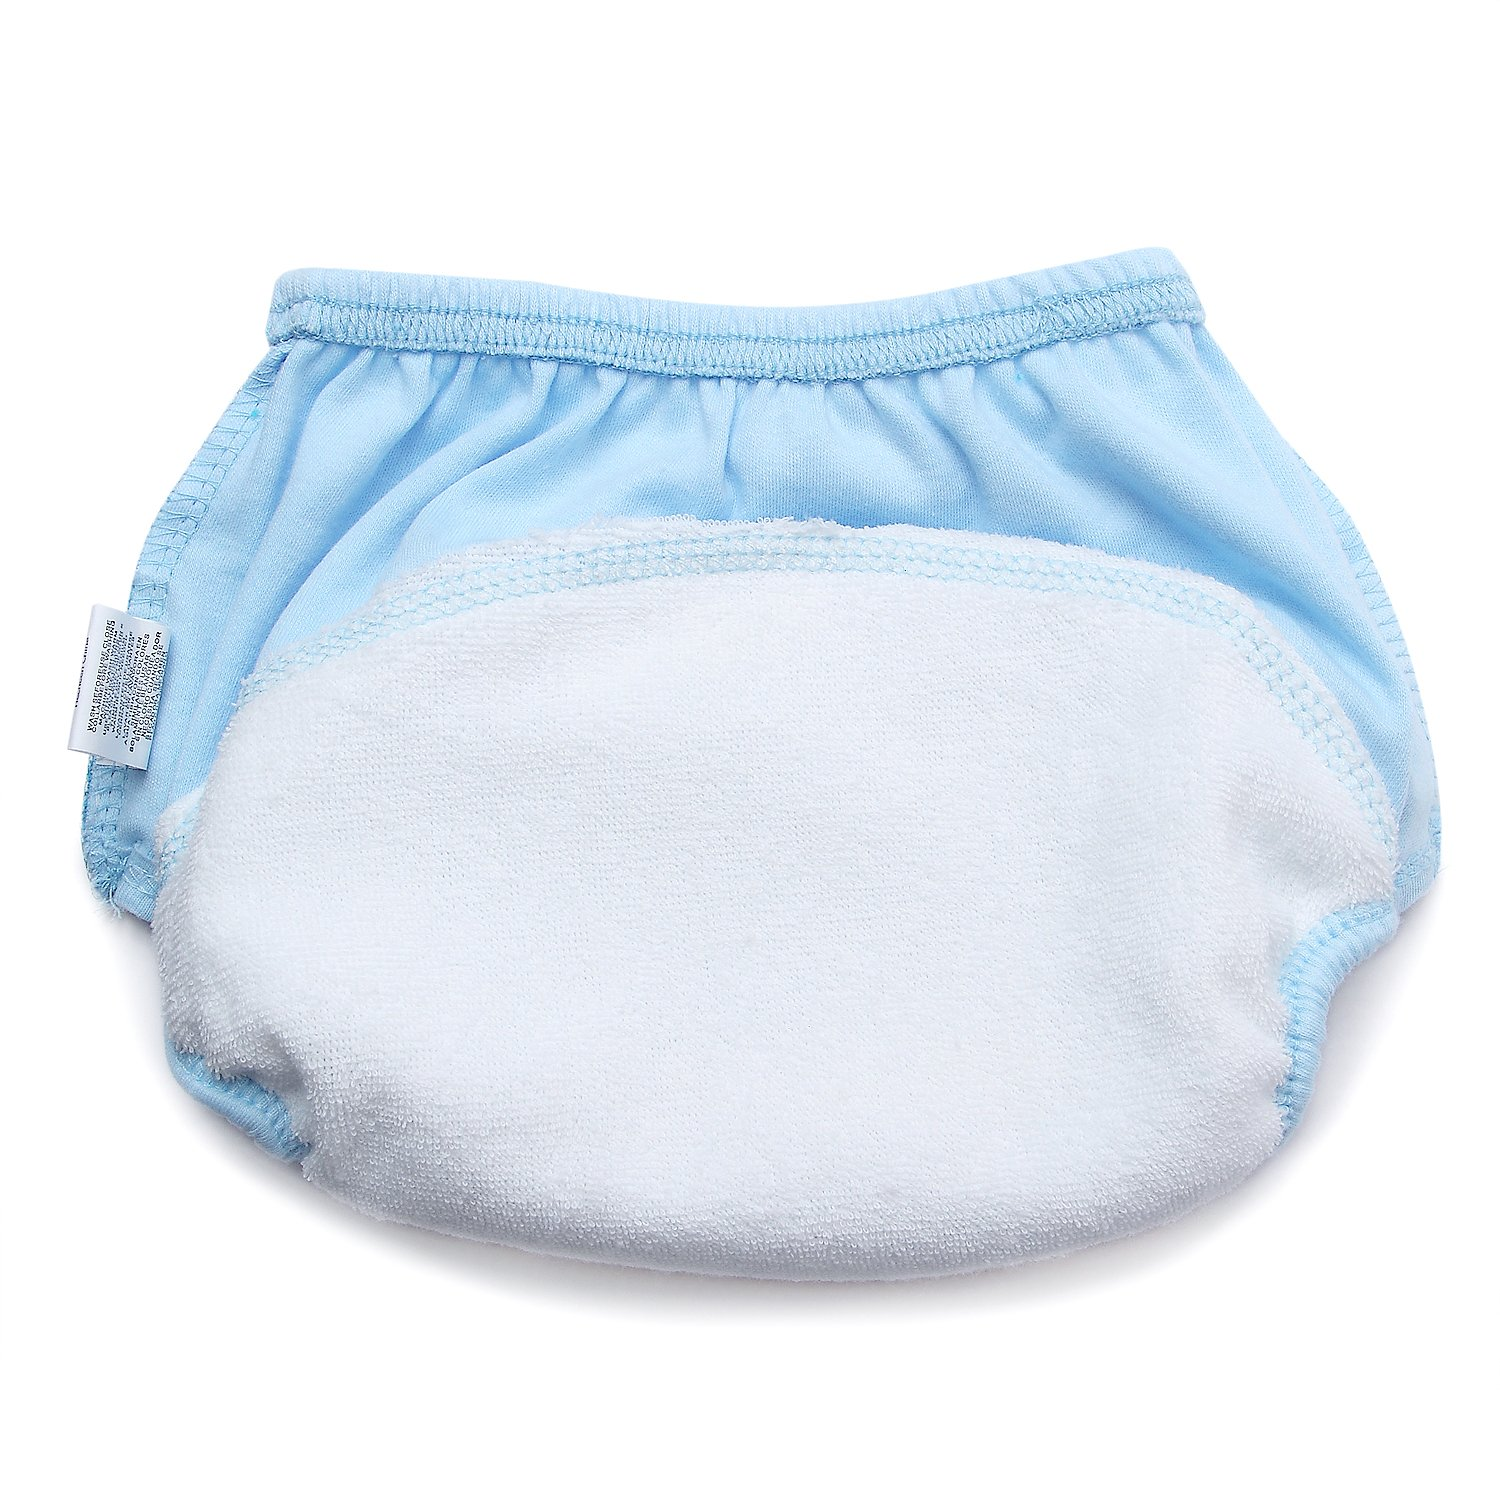 Ateid Baby Boys Reusable Potty Training Pants Pack of 4